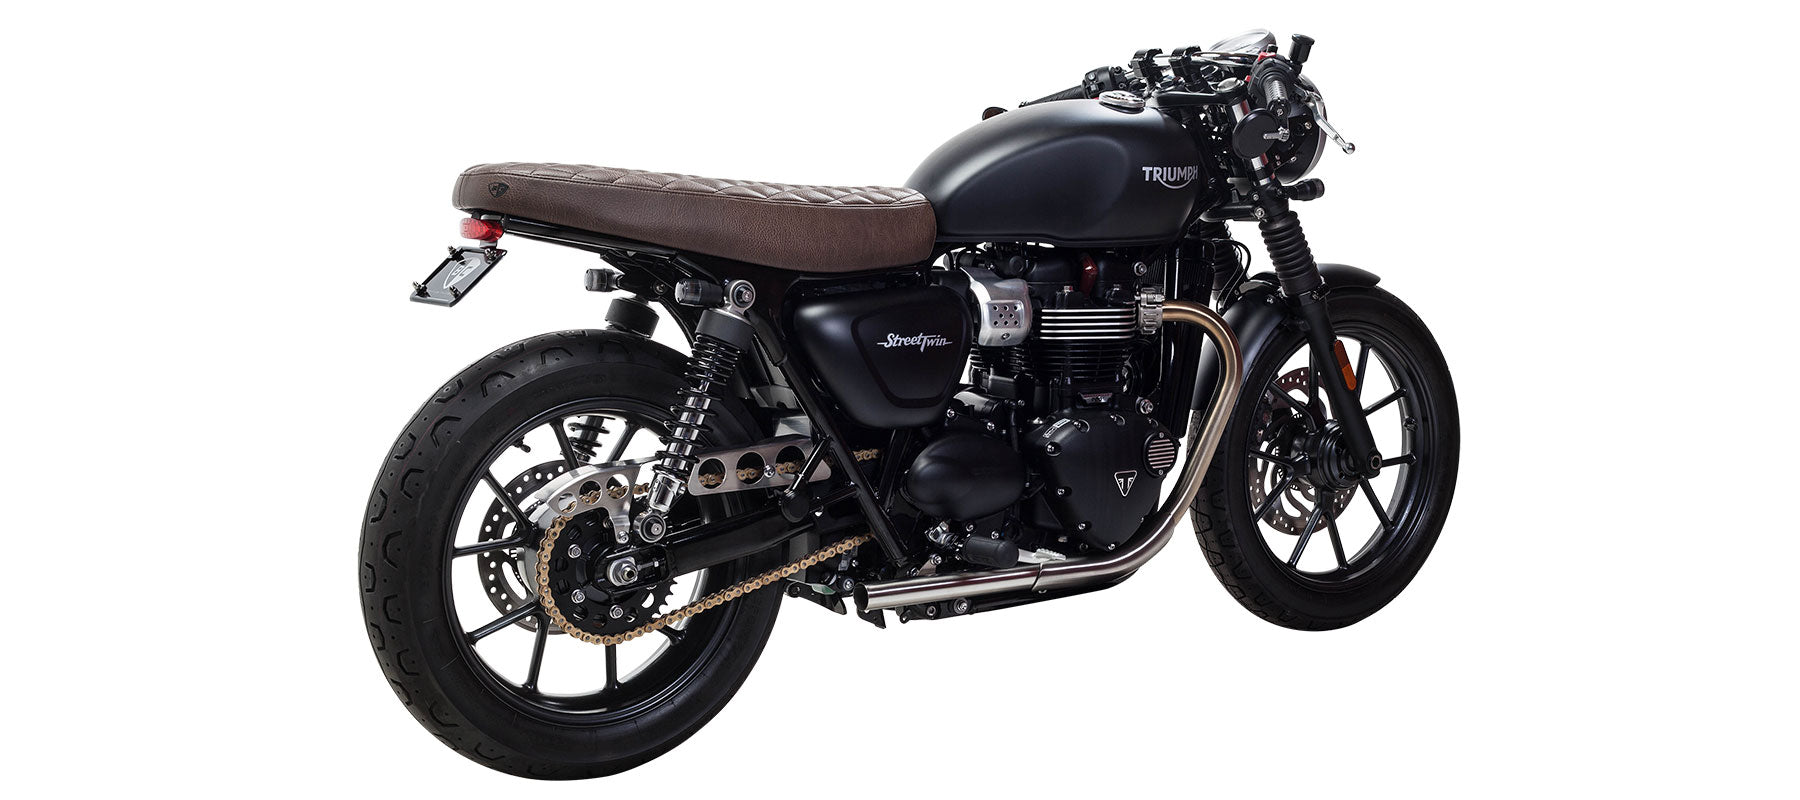 British Customs Straight Pipe Performance Tips for Street Twin